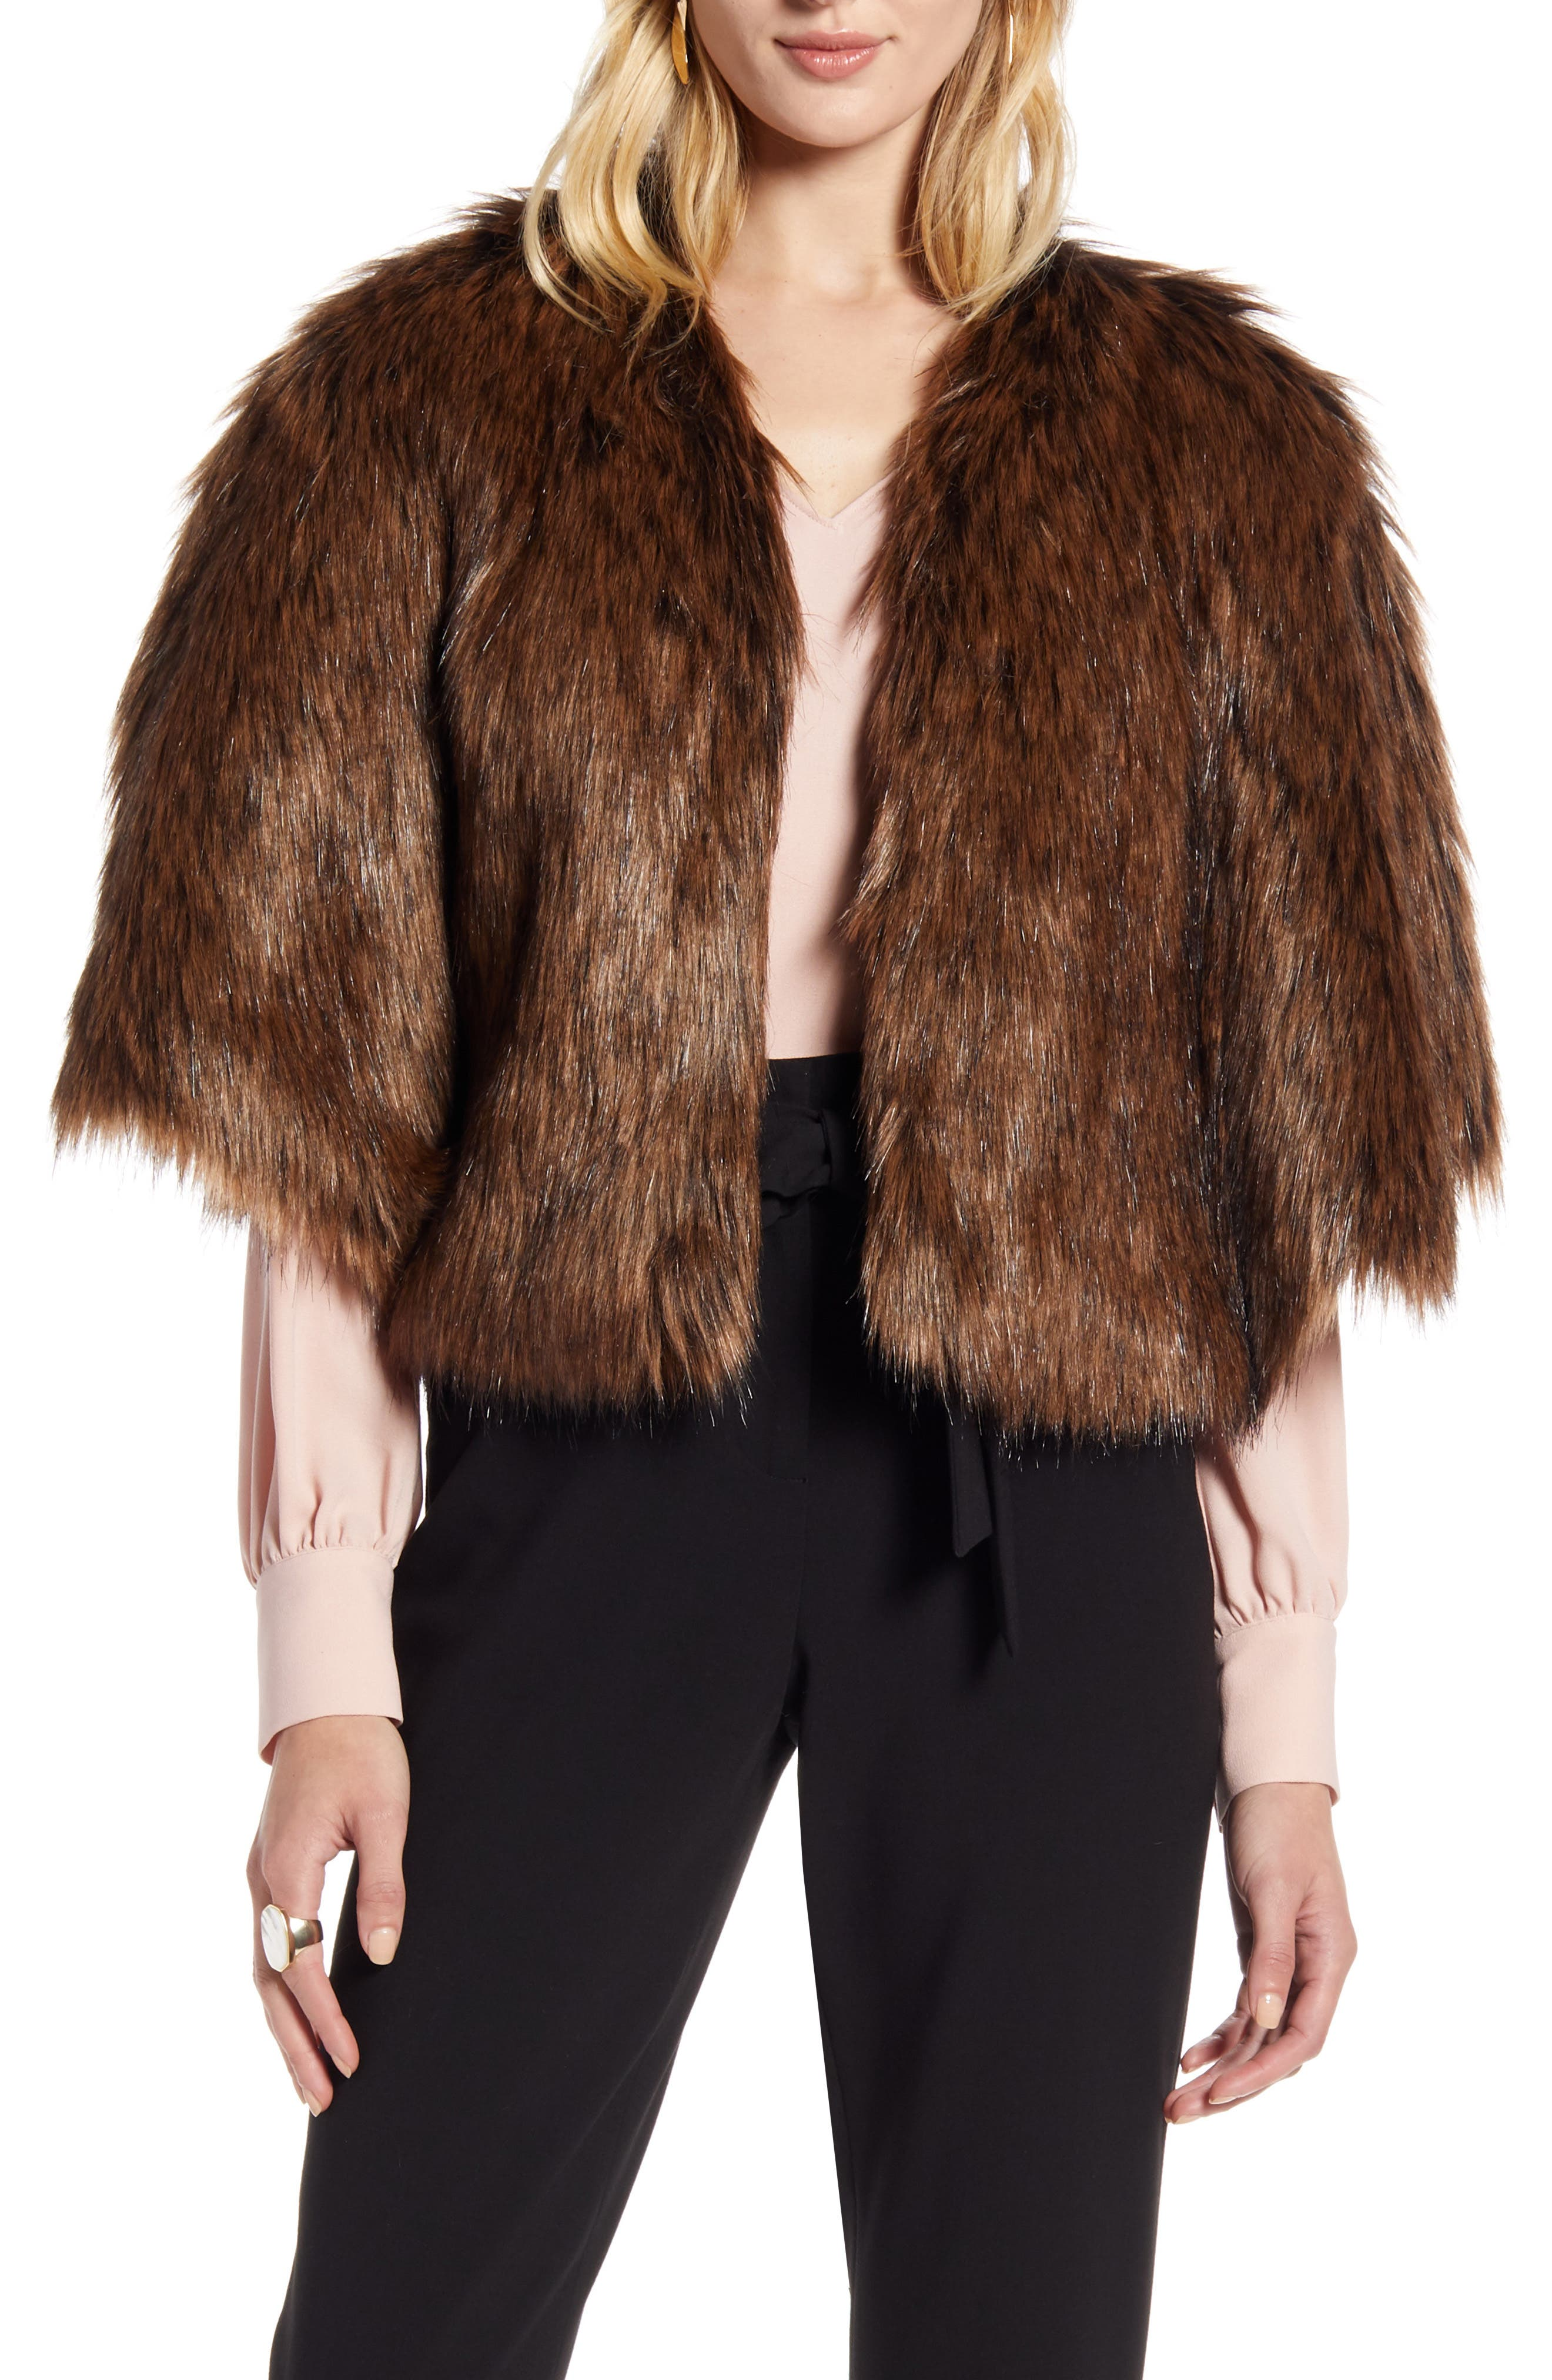 Perfect for topping off party looks or adding a plush touch to casual outfits, this faux-fur capelet is sure to be a go-to all season long. Style Name: Halogen Faux Fur Capelet. Style Number: 5861594. Available in stores.